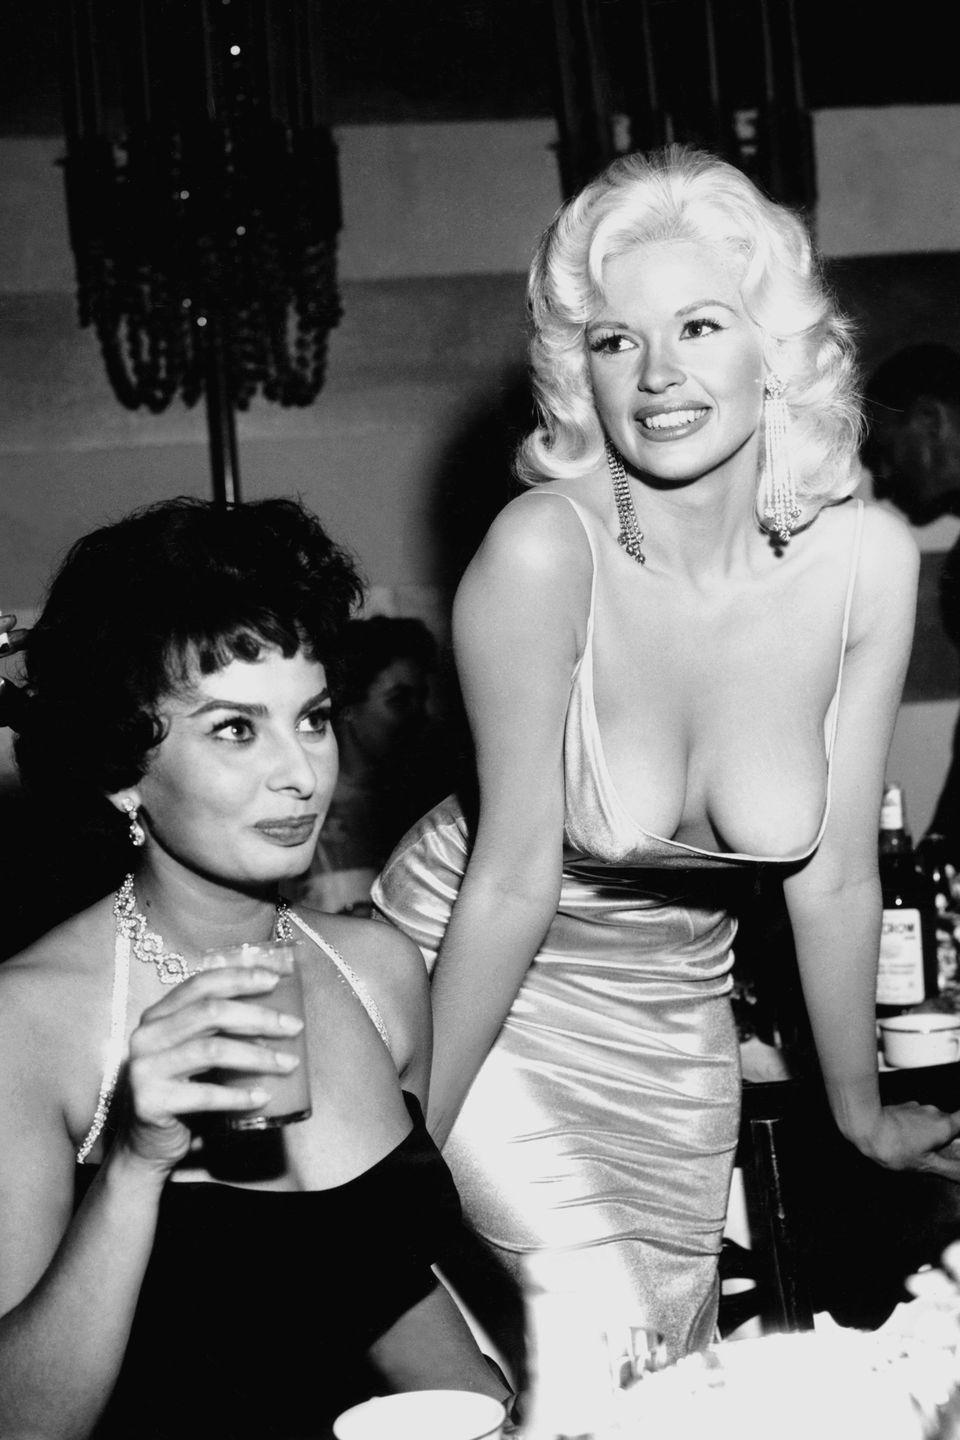 <p>Mansfield kept up with the same publicity antics that she used to grab her studio's attention years before and became known for creating a spectacle in the form of photo bombs or manufacturing wardrobe malfunctions for the press. The actress garnered a lot of attention for one photo in particular: the Sophia Loren side-eye for this revealing dress.</p>